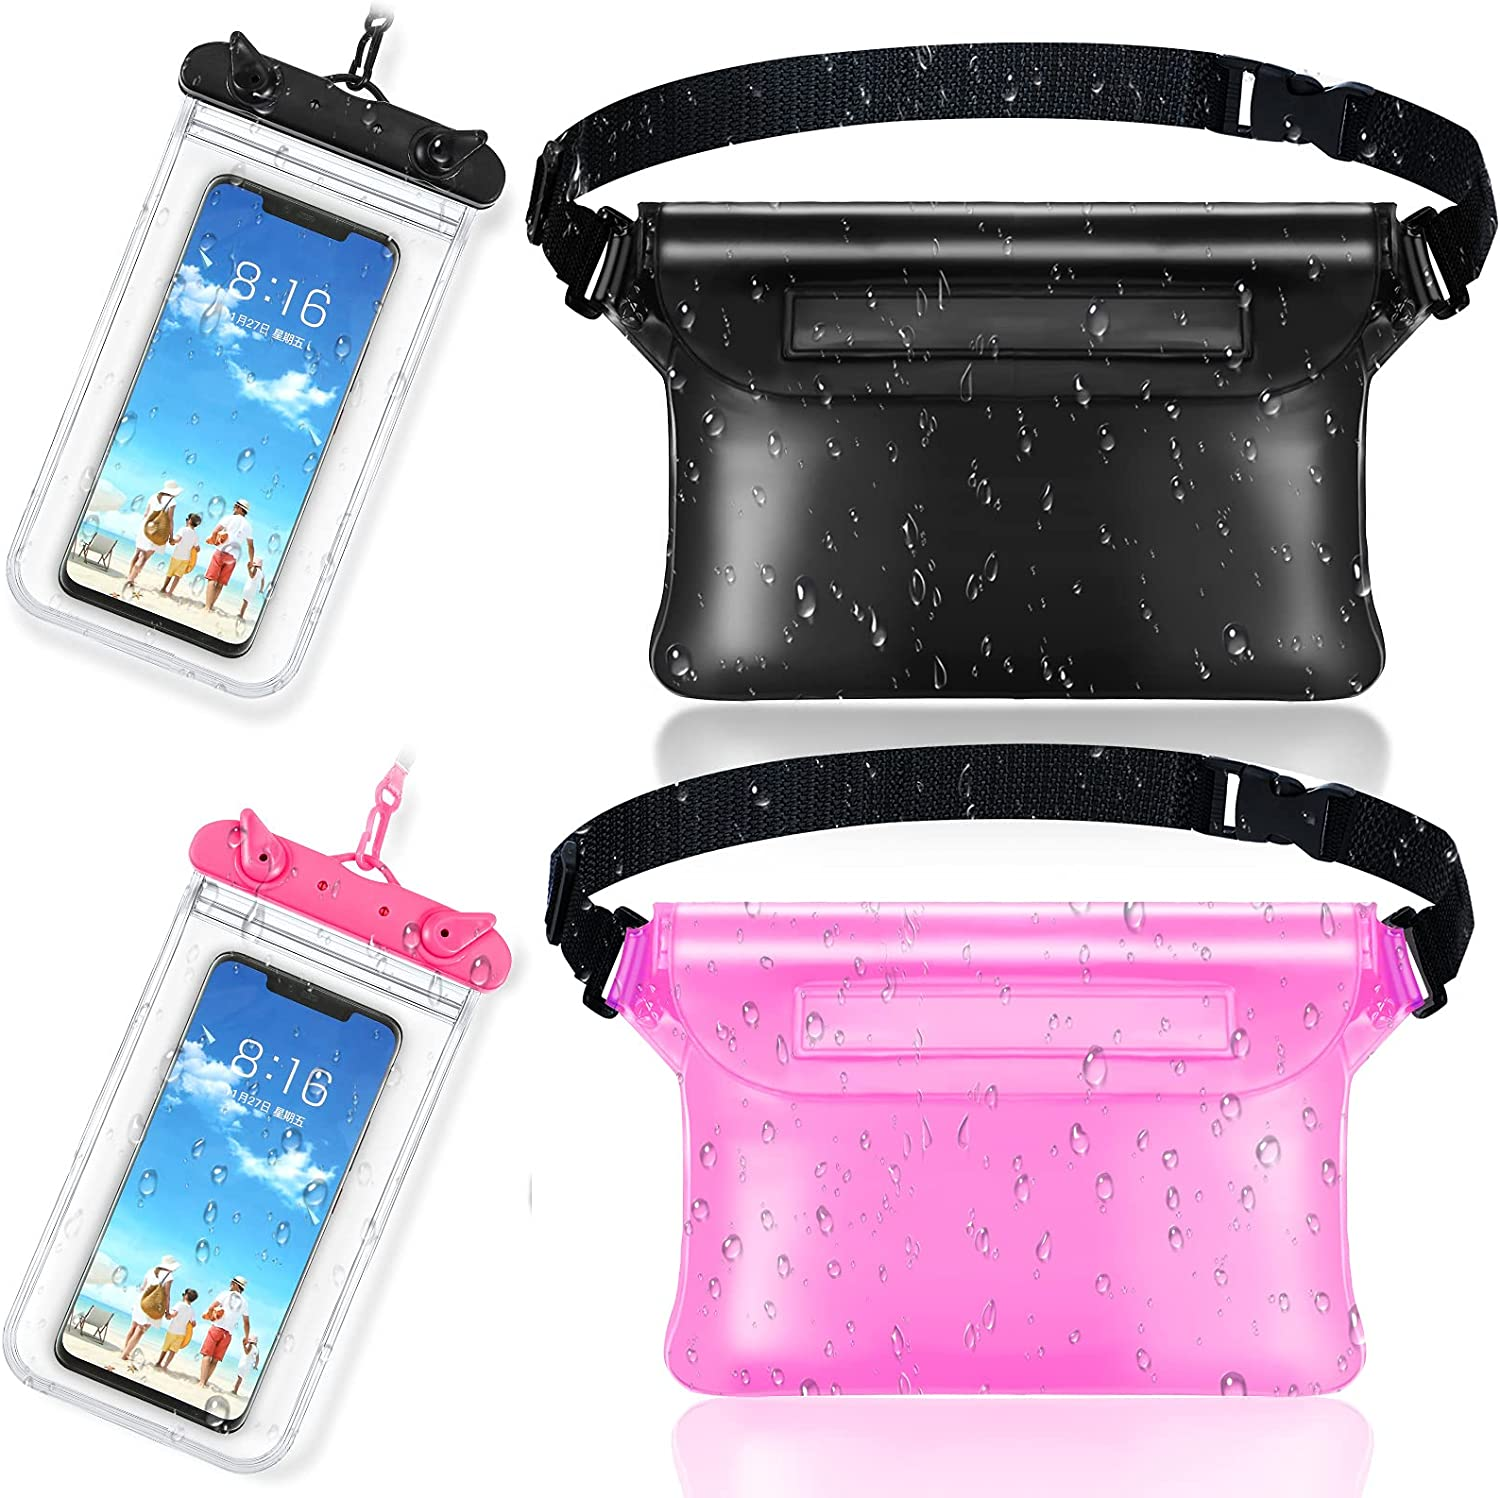 Frienda 2 Pieces Waterproof Phone Pouch Universal Cellphone Case and 2 Waterproof Fanny Pack with Waist Strap Screen Touchable Dry Bag for Swimming Snorkeling Boating (Clear Black, Black, Pink)